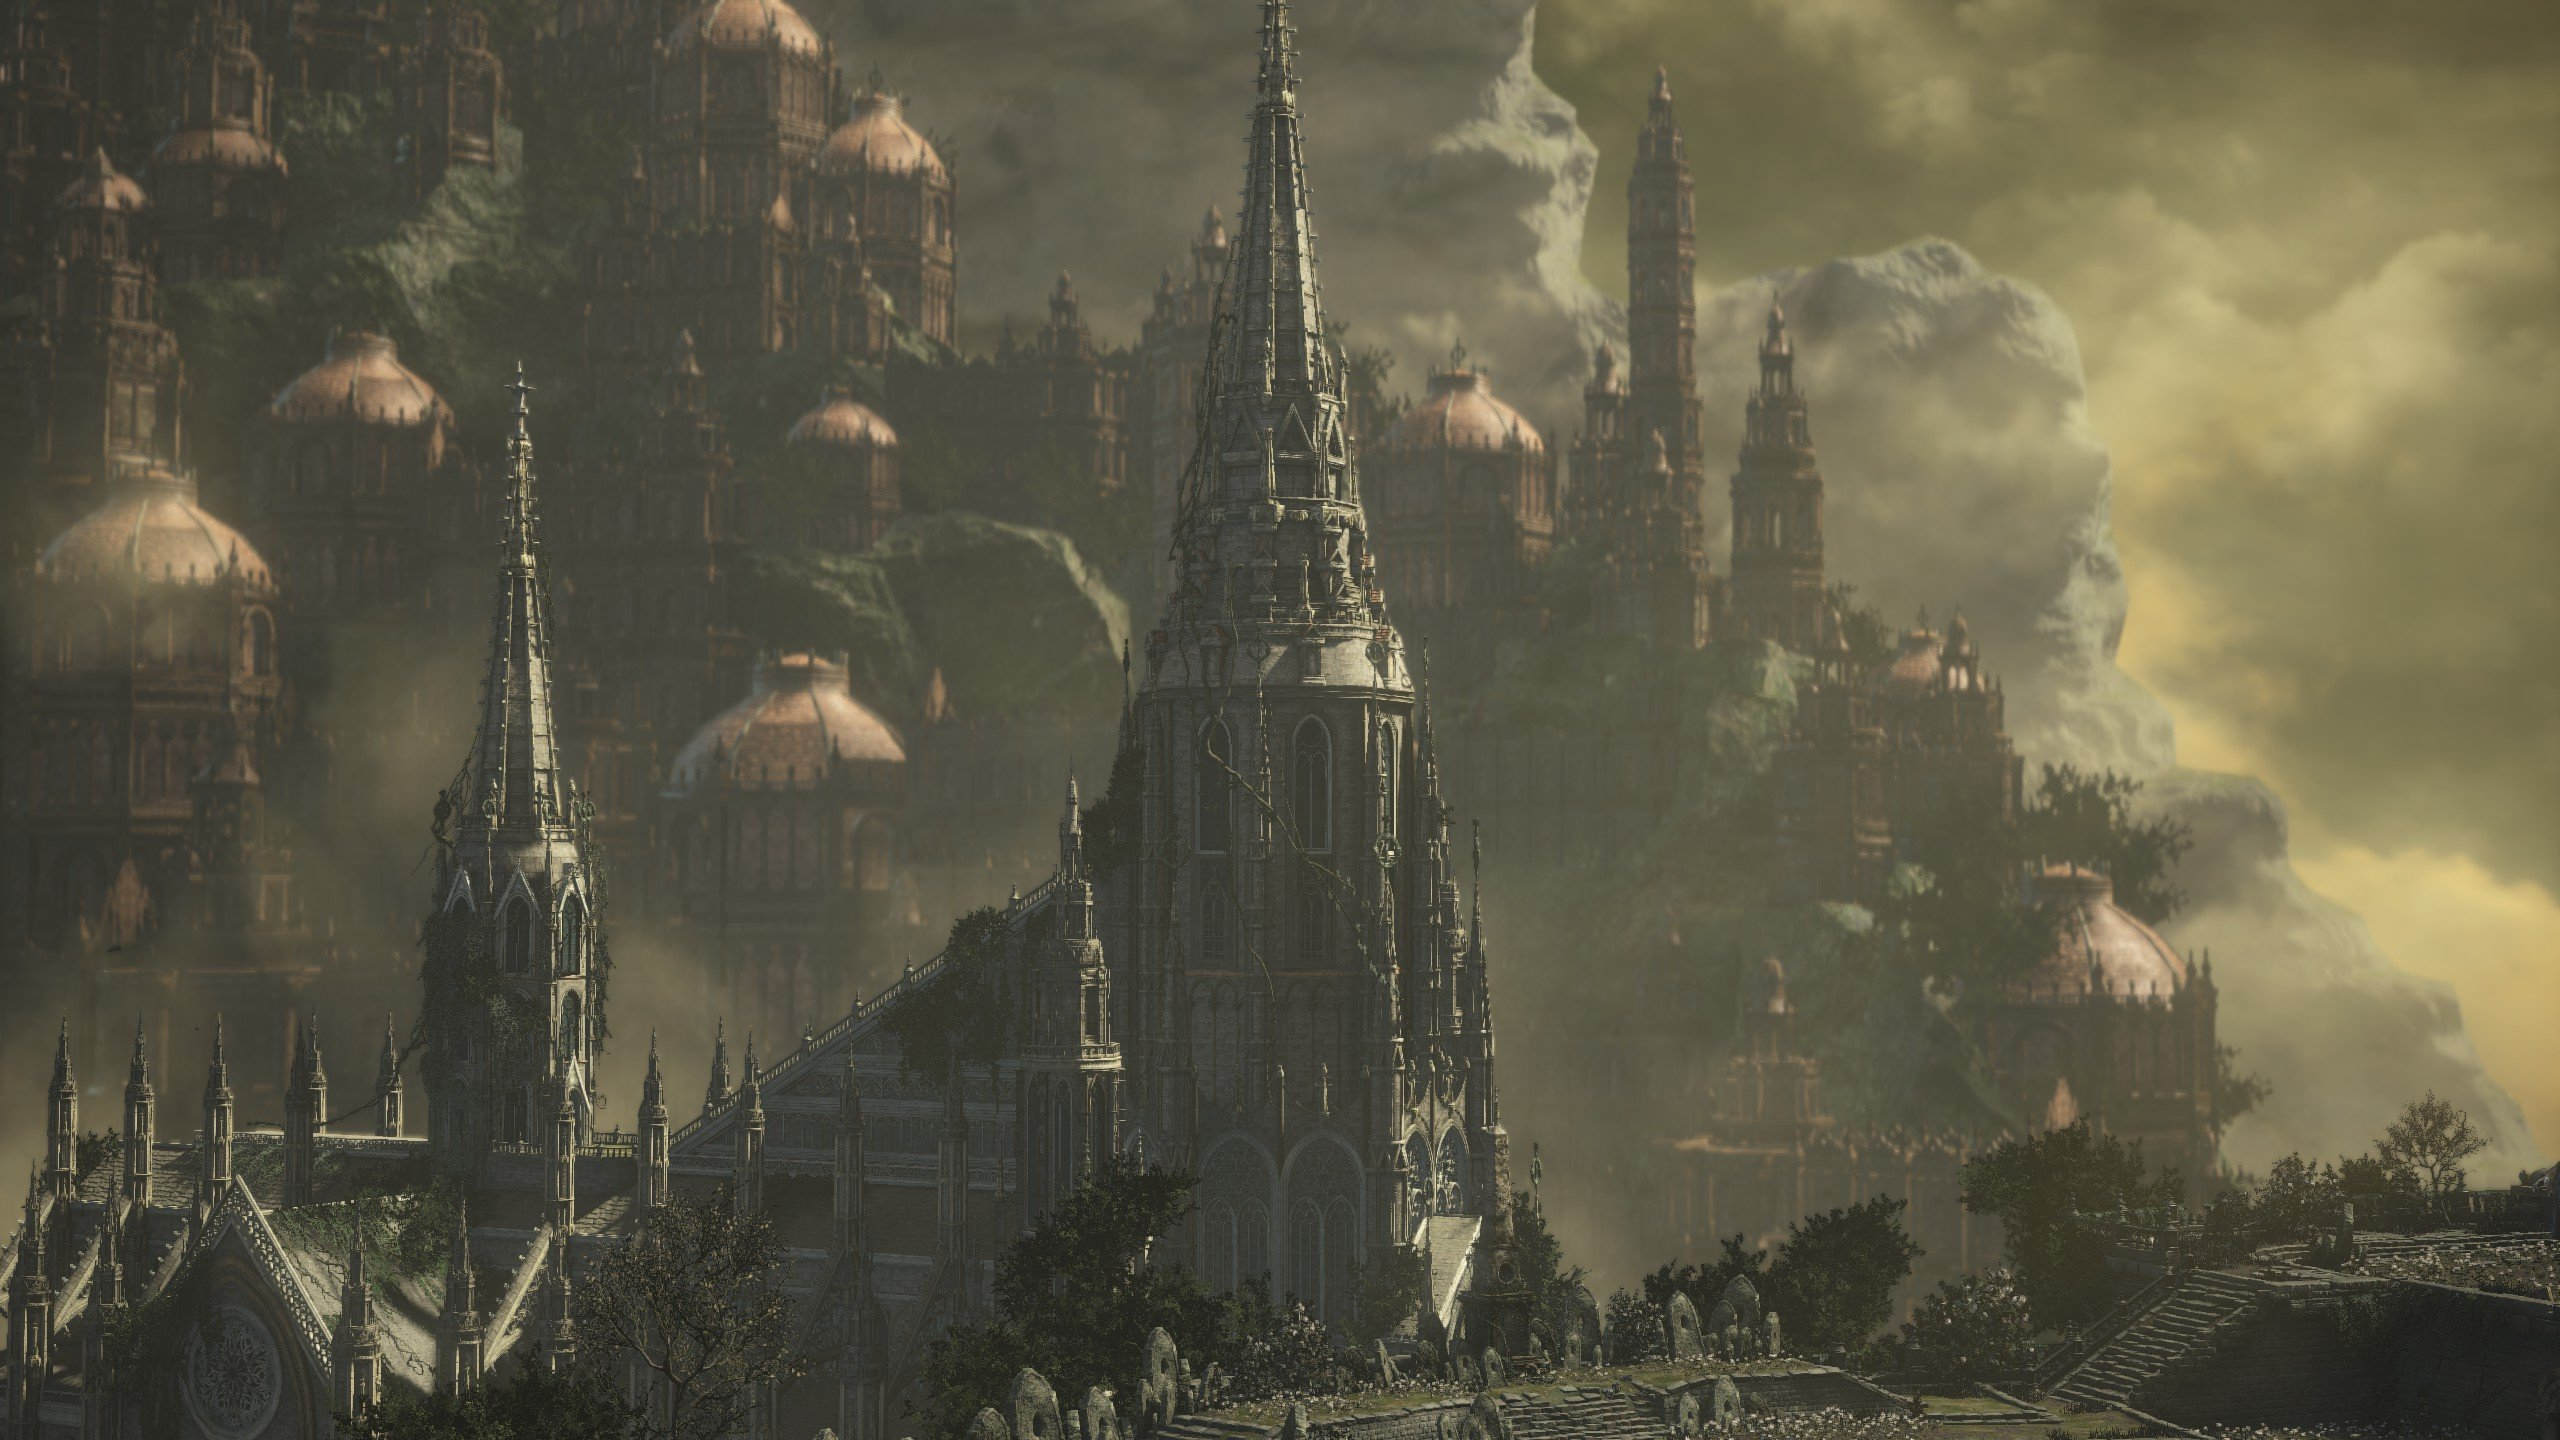 The Ringed City Wallpaper: City Wallpapers, Photos And Desktop Backgrounds Up To 8K